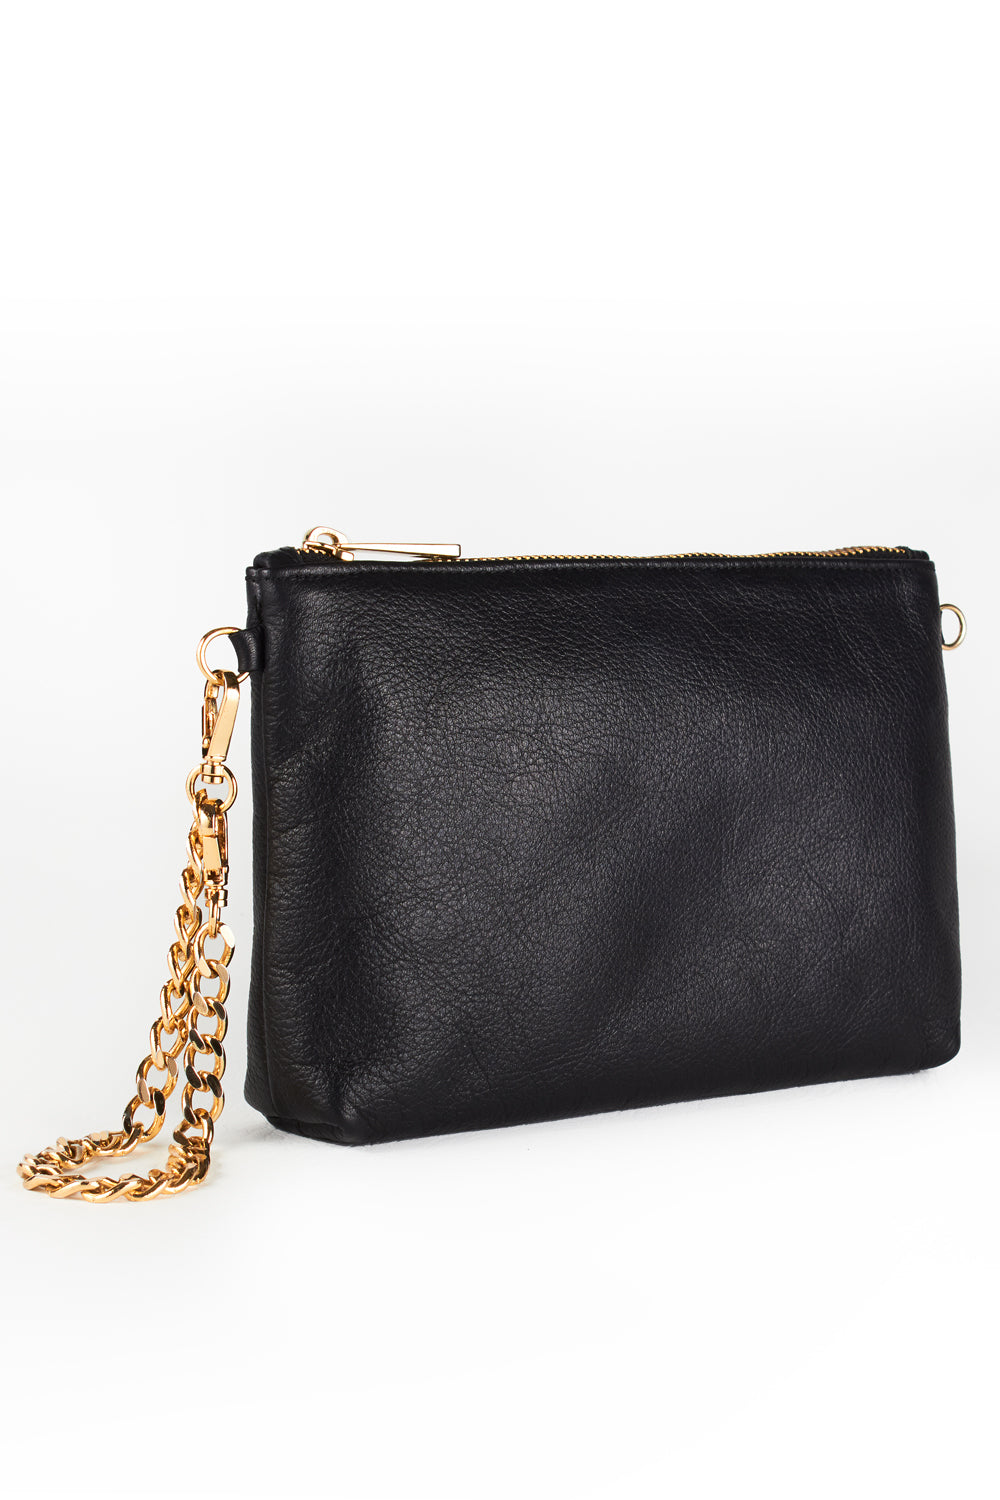 Mel Boteri | Black Leather 'Kat' Pouch | Side View